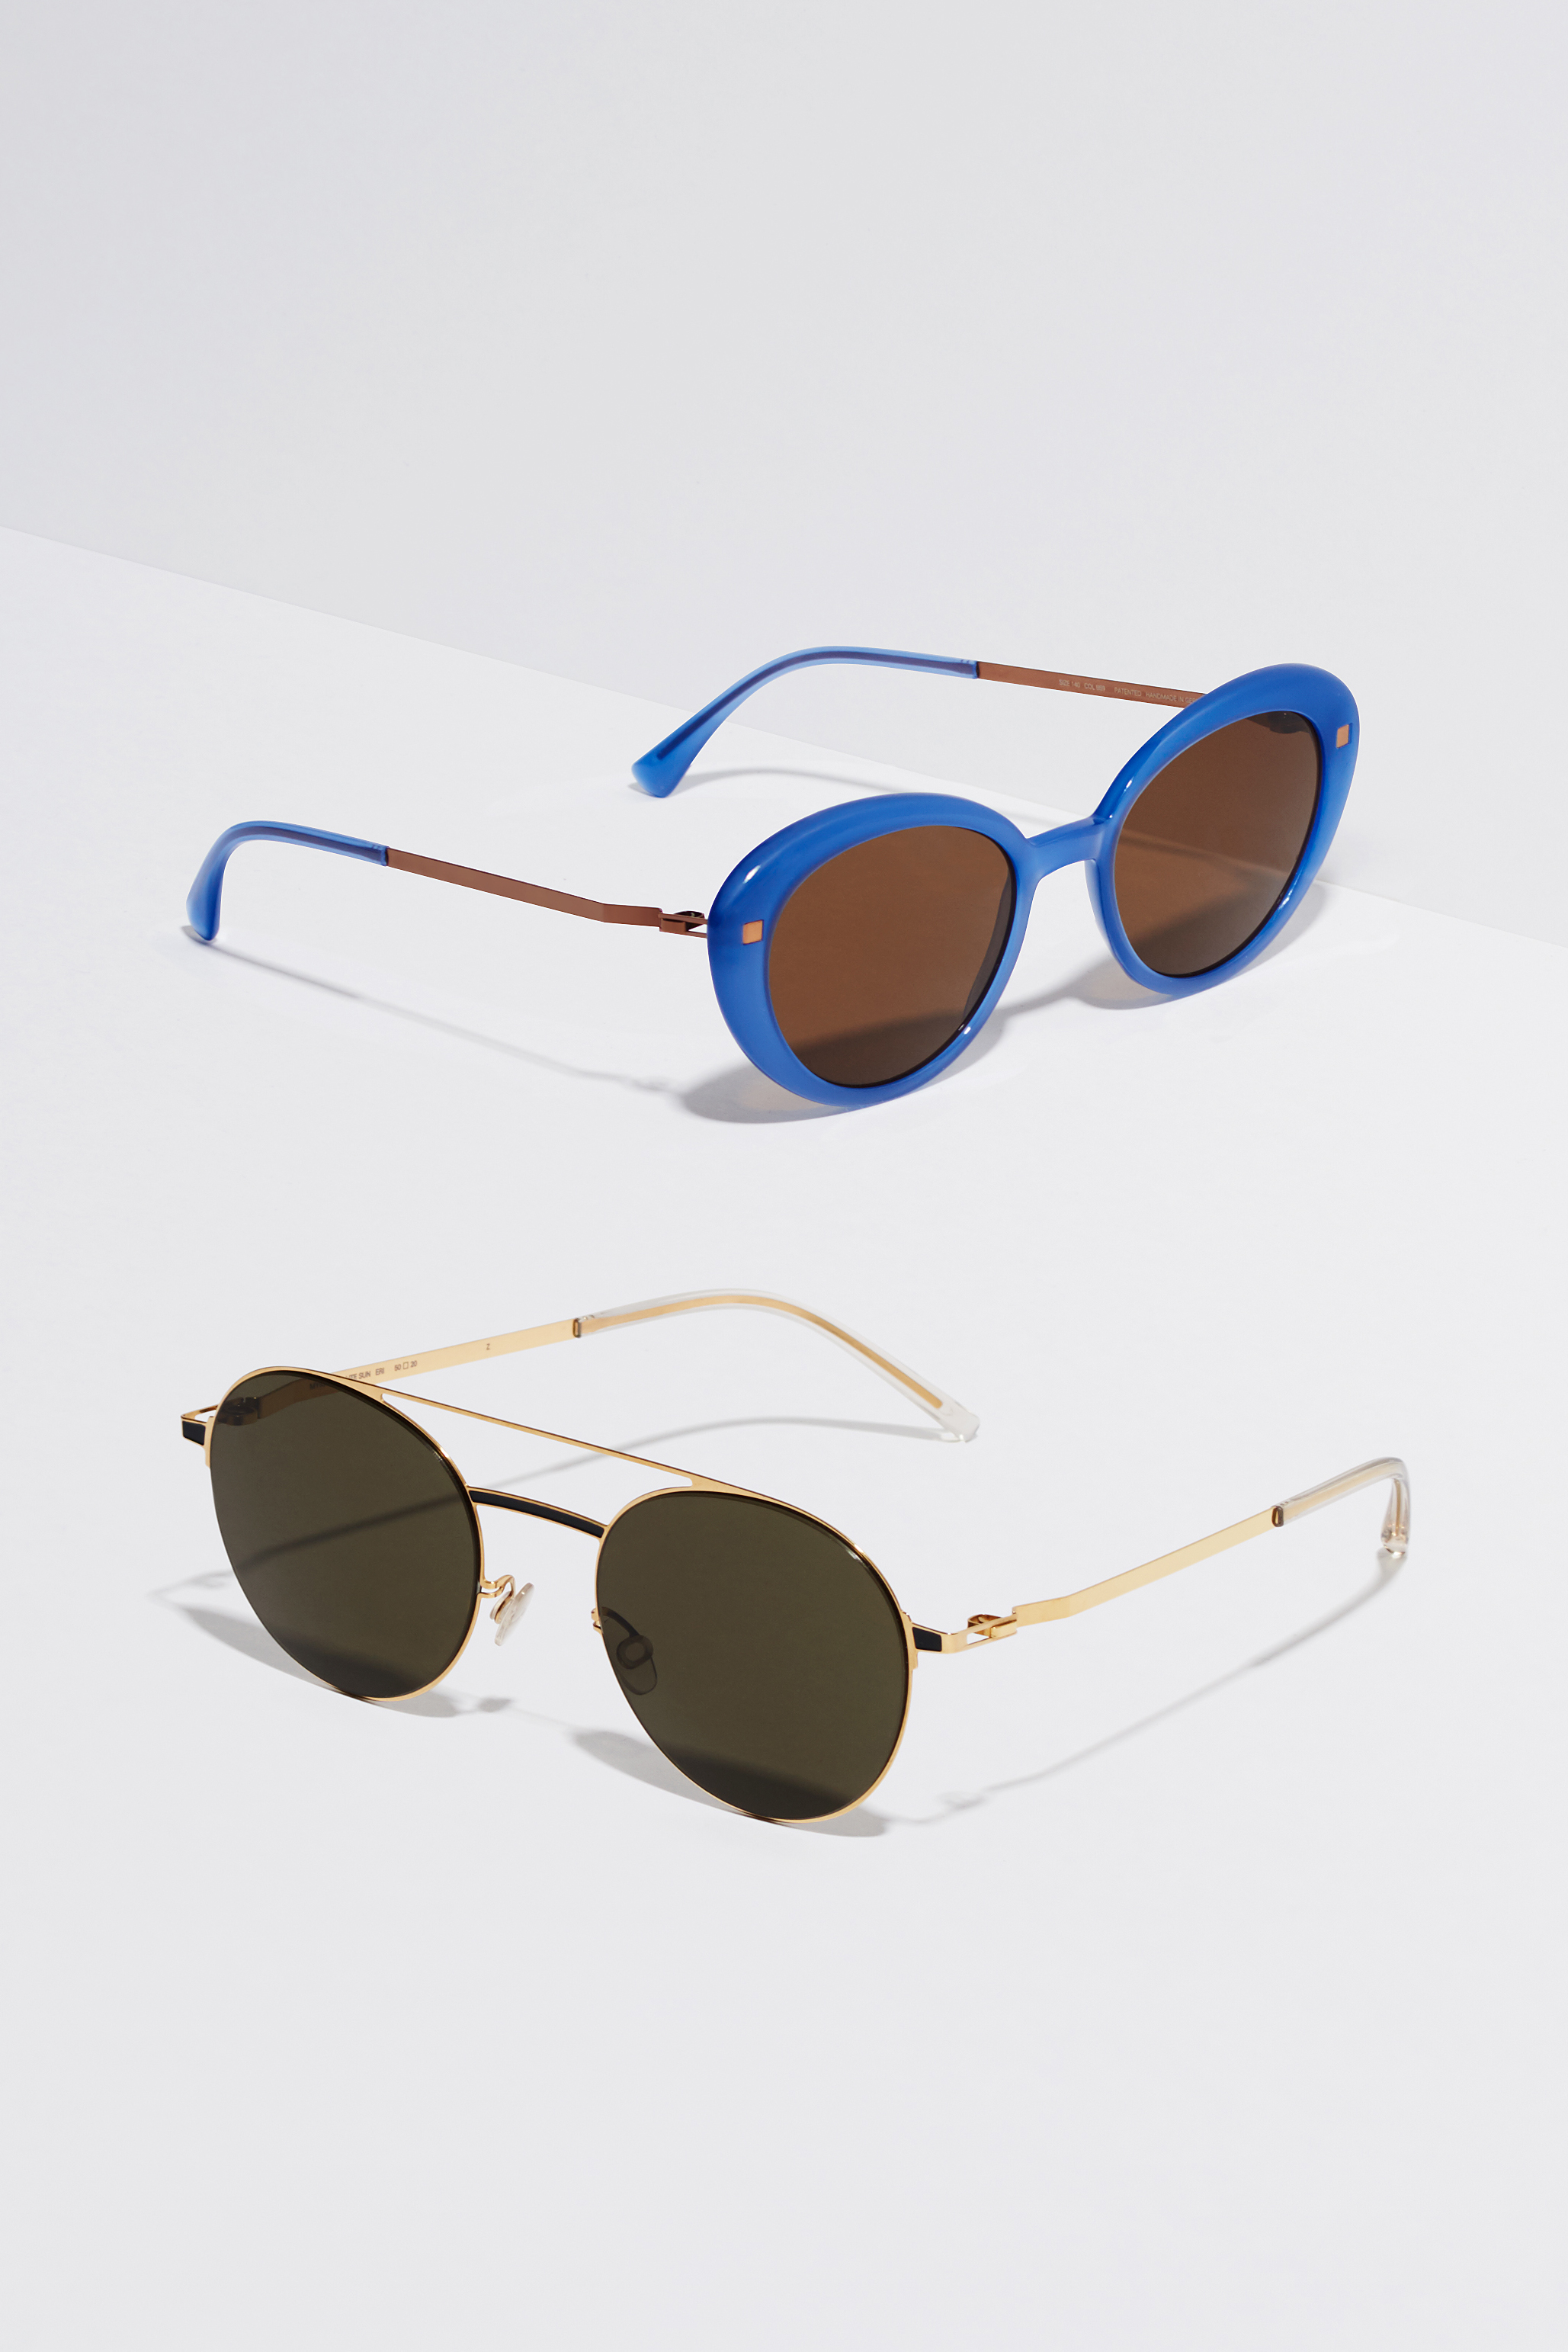 c7a3b4cf2d MYKITA Lite Acetate Sun Luava C88 Misty Blue Shiny Copper Brown Solid  MYKITA Lite Acetate Sun